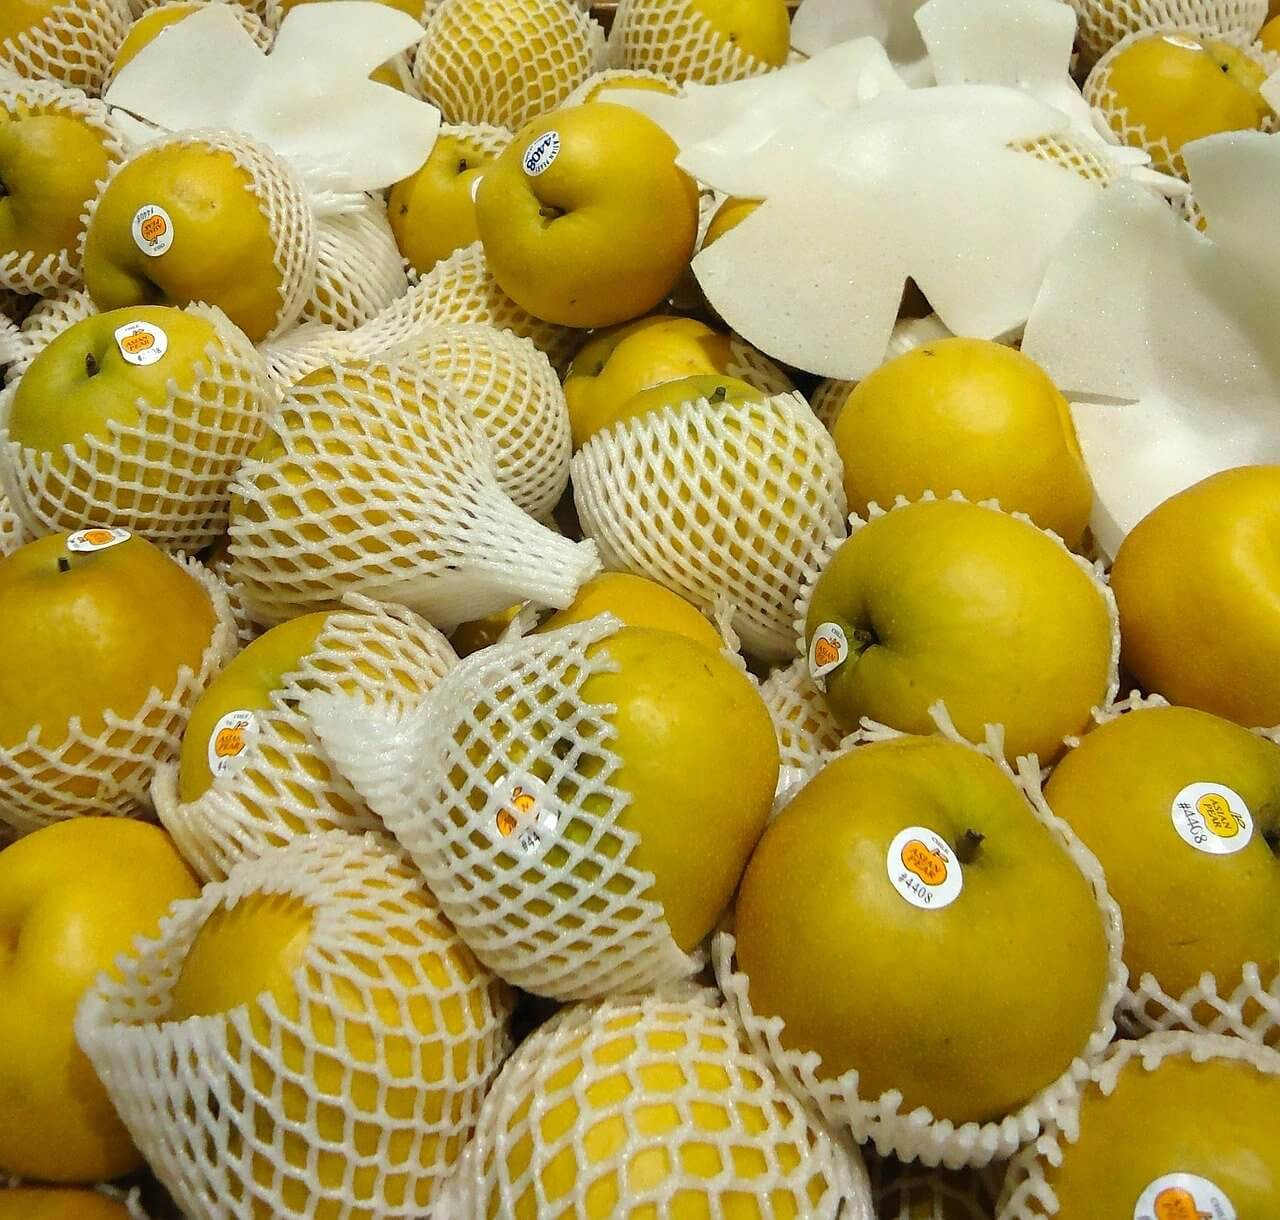 Asian pears in a grocery store